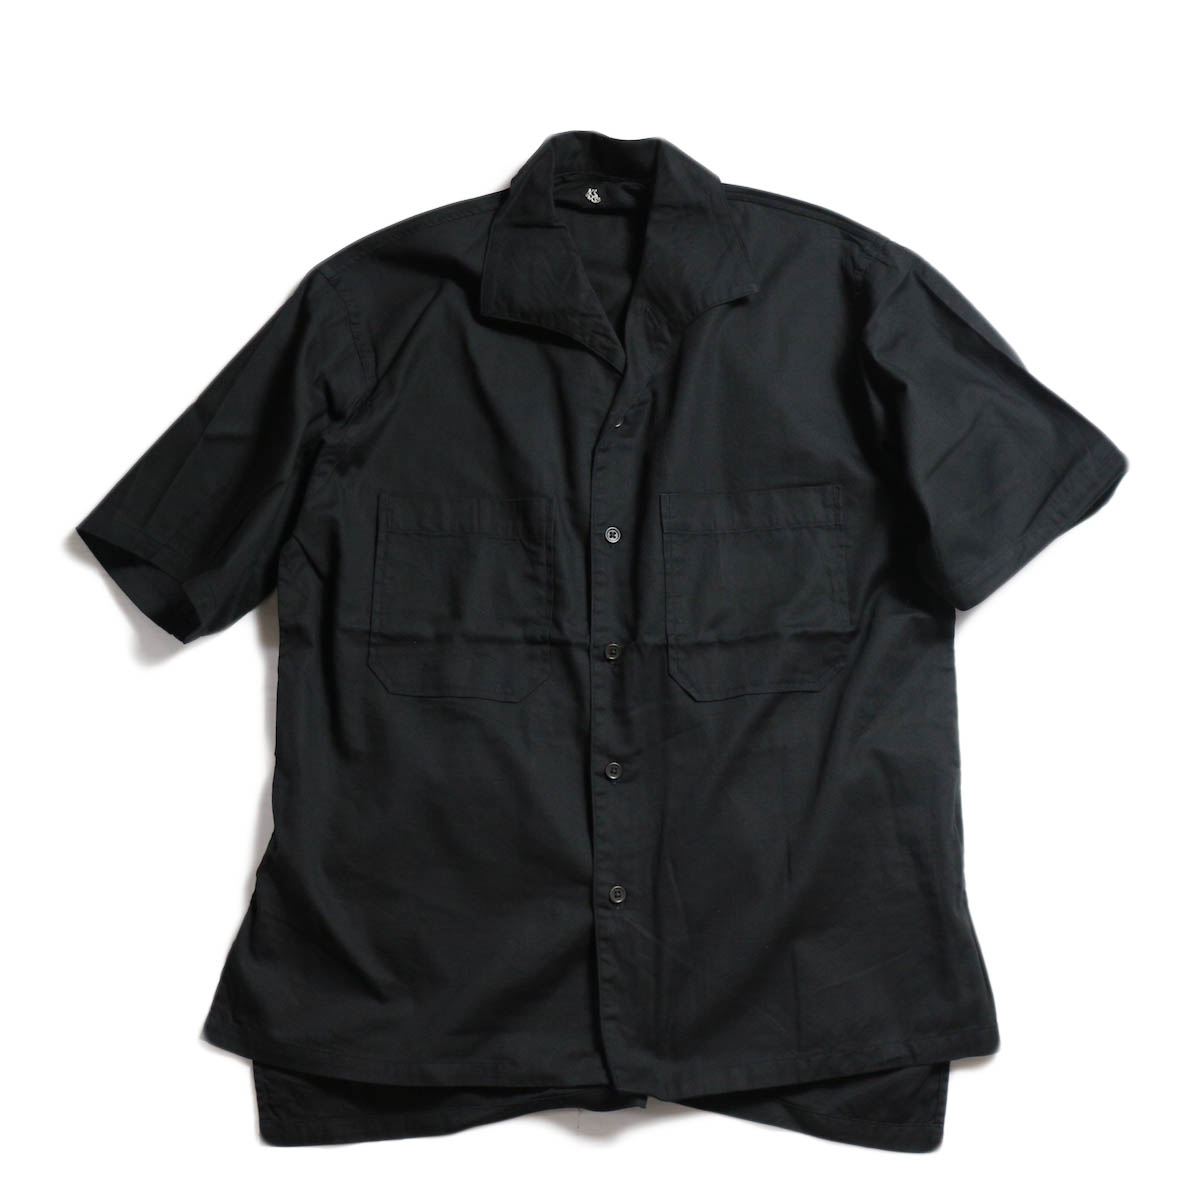 Kaptain Sunshine / Italian Collar Safari Shirt -Black